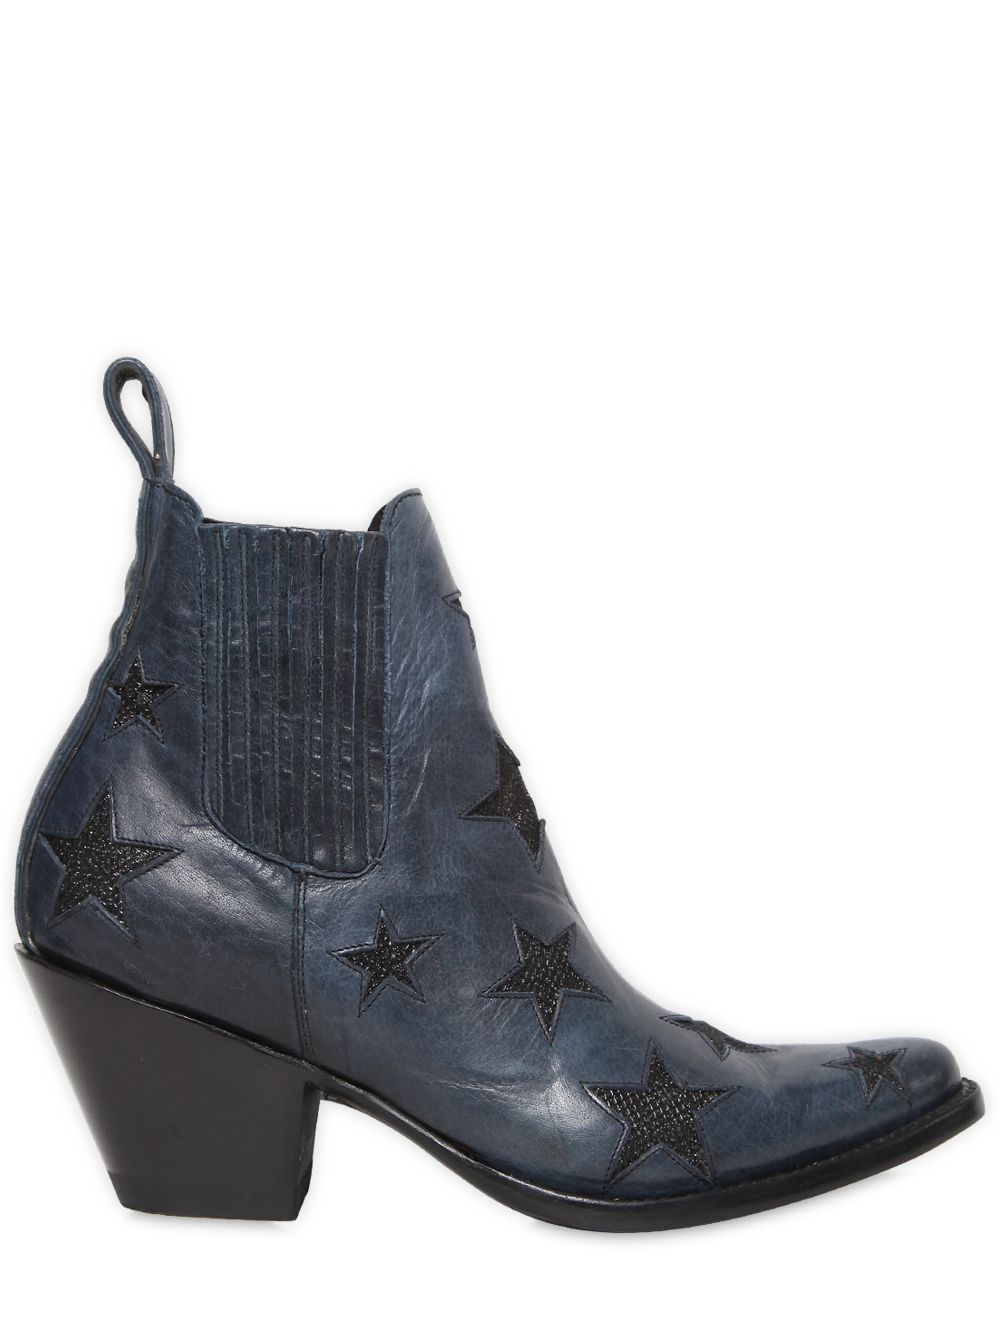 MEXICANA 65MM STARS LEATHER ANKLE BOOTS. #mexicana #shoes #